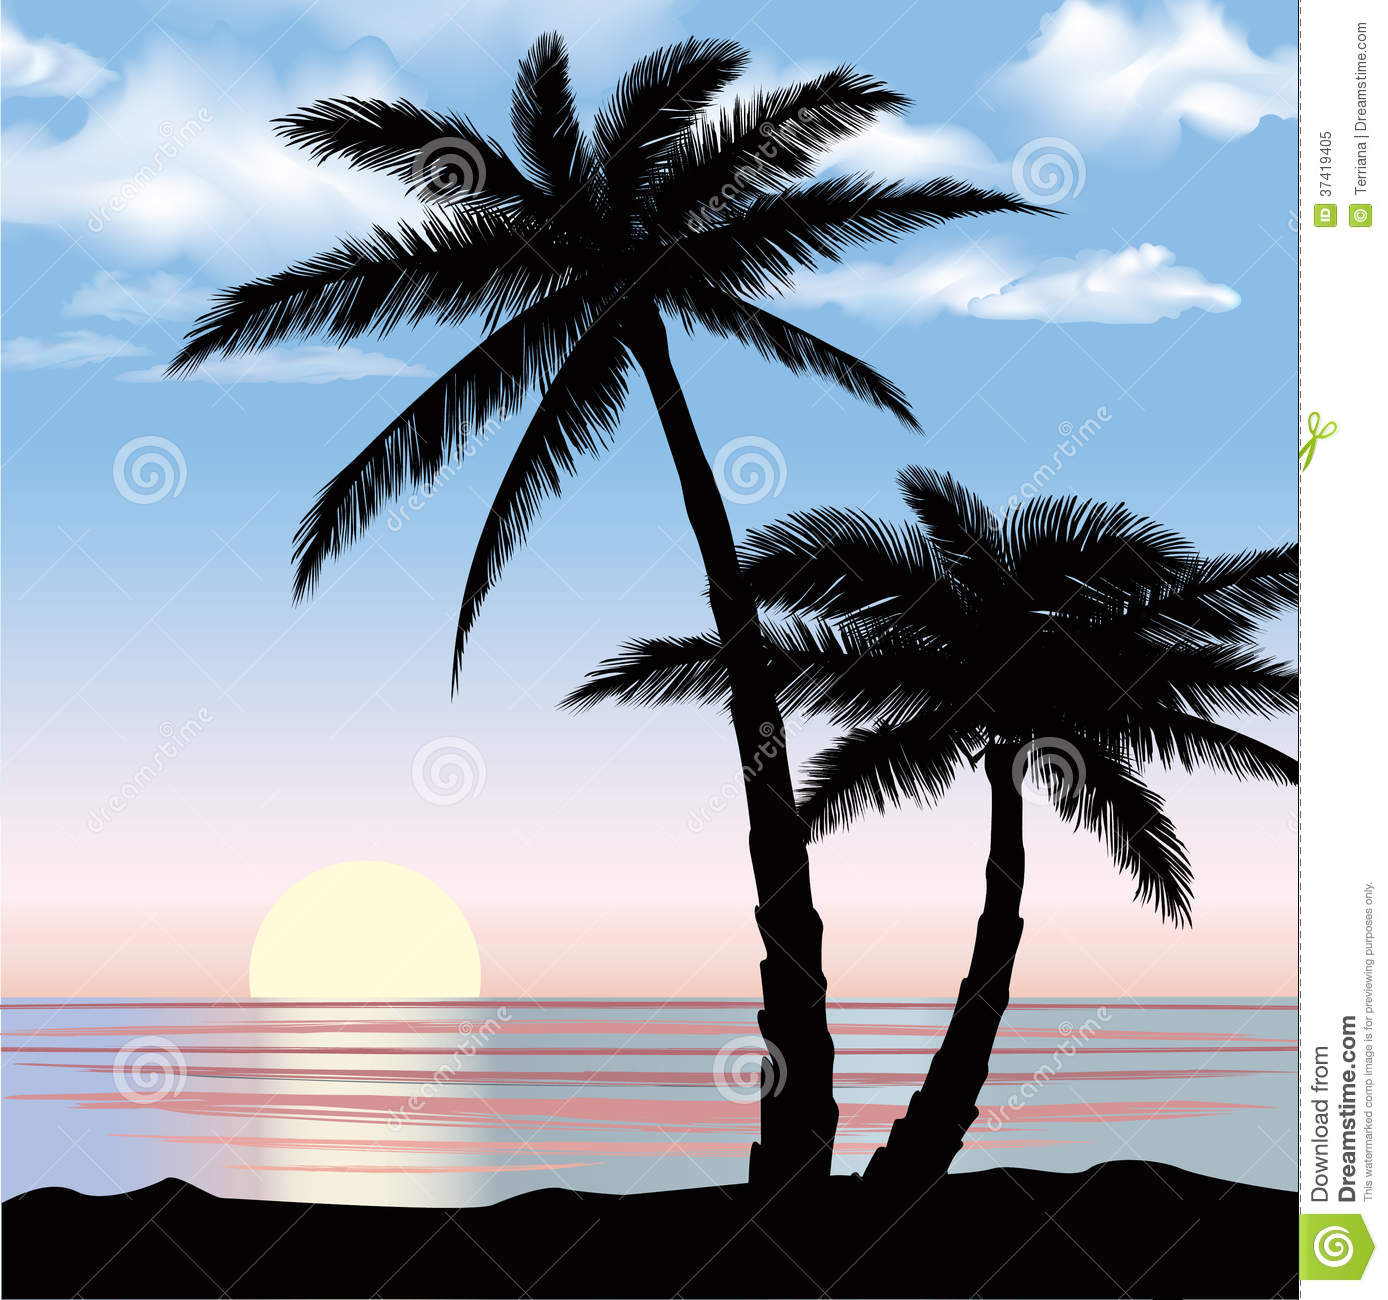 Silhouette Sunset With Palm Trees - HD Wallpaper